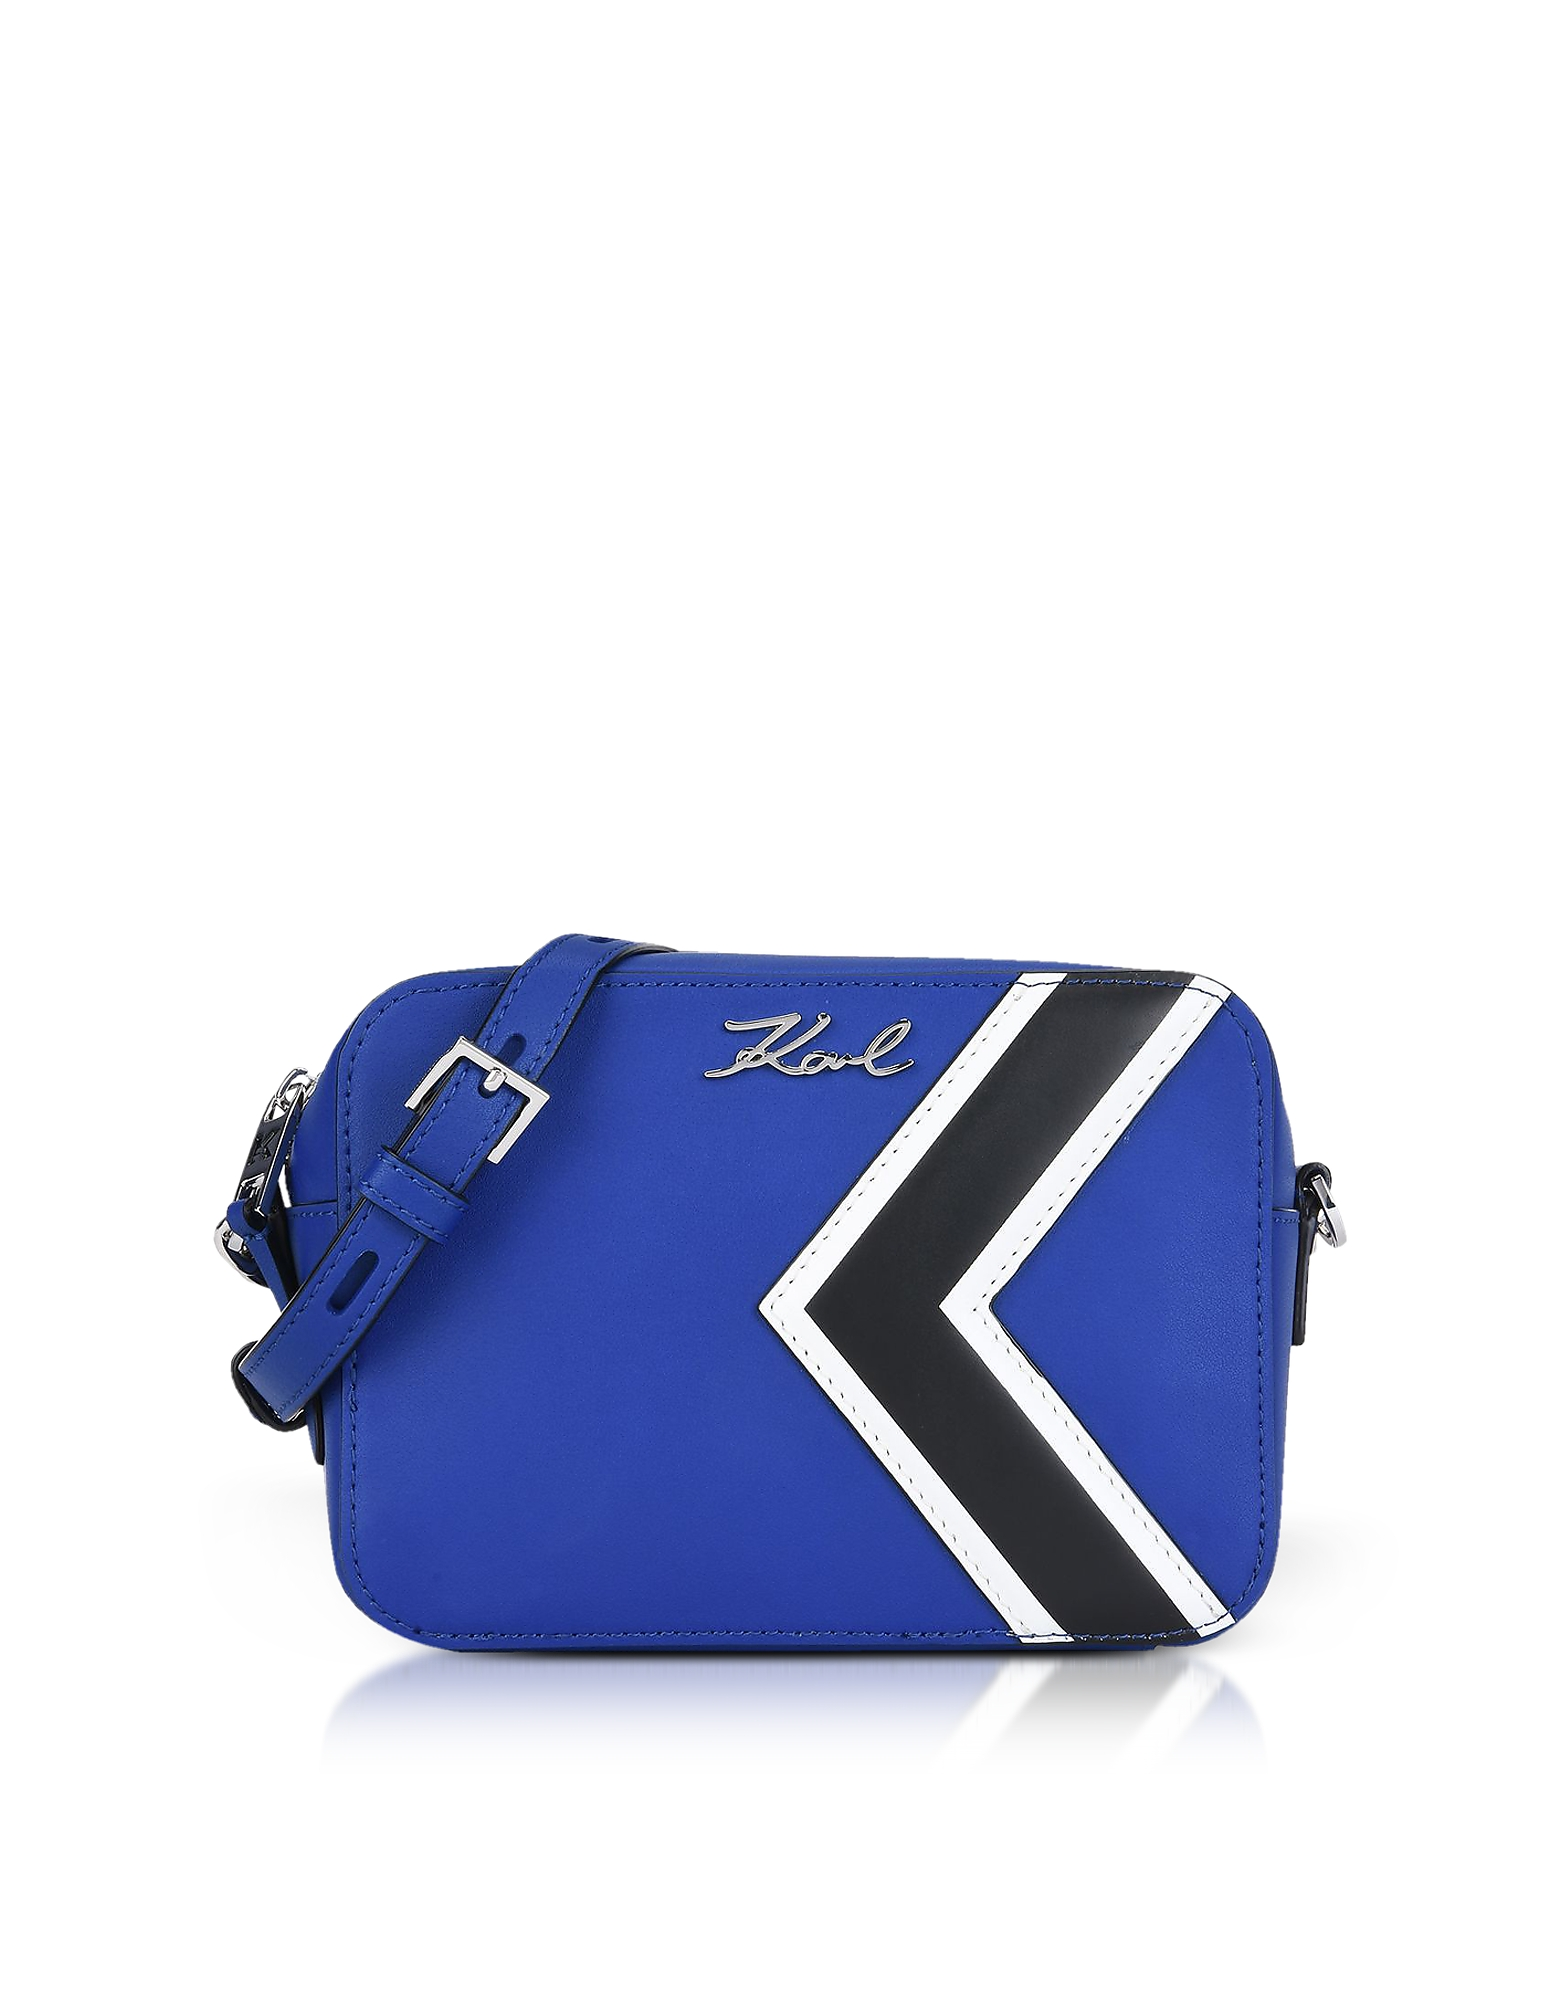 K/Stripes Camera Bag. K/Stripes Camera Bag crafted in smooth leather with signature K stripe detail, puts Karl's sport logo on the fr